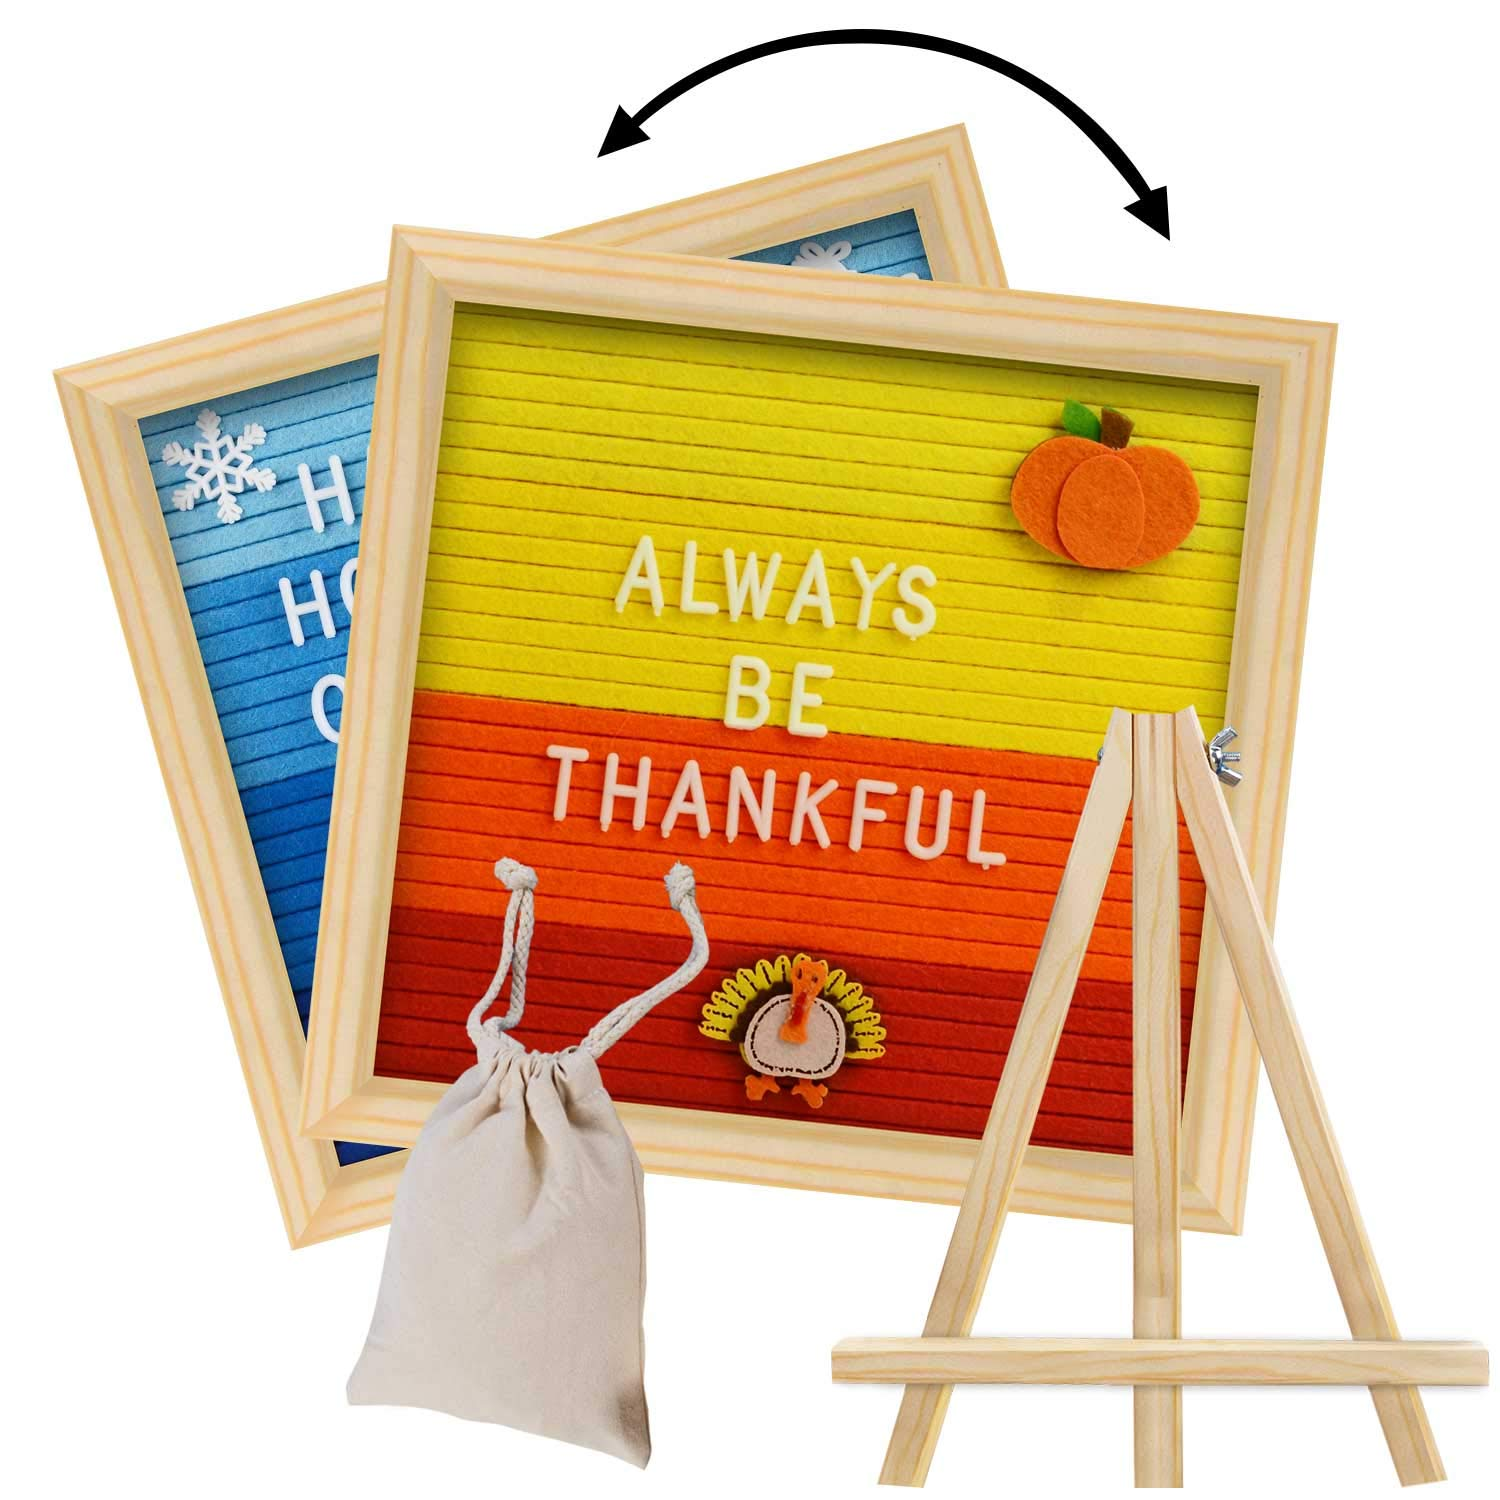 Double Sided Letter Board with 450 White Letters,Months & Days & Extra Cursive Words, Wall & Tabletop Display, Letter Bag, Write a Holidays Message for Thanksgiving & Christmas by Jocri